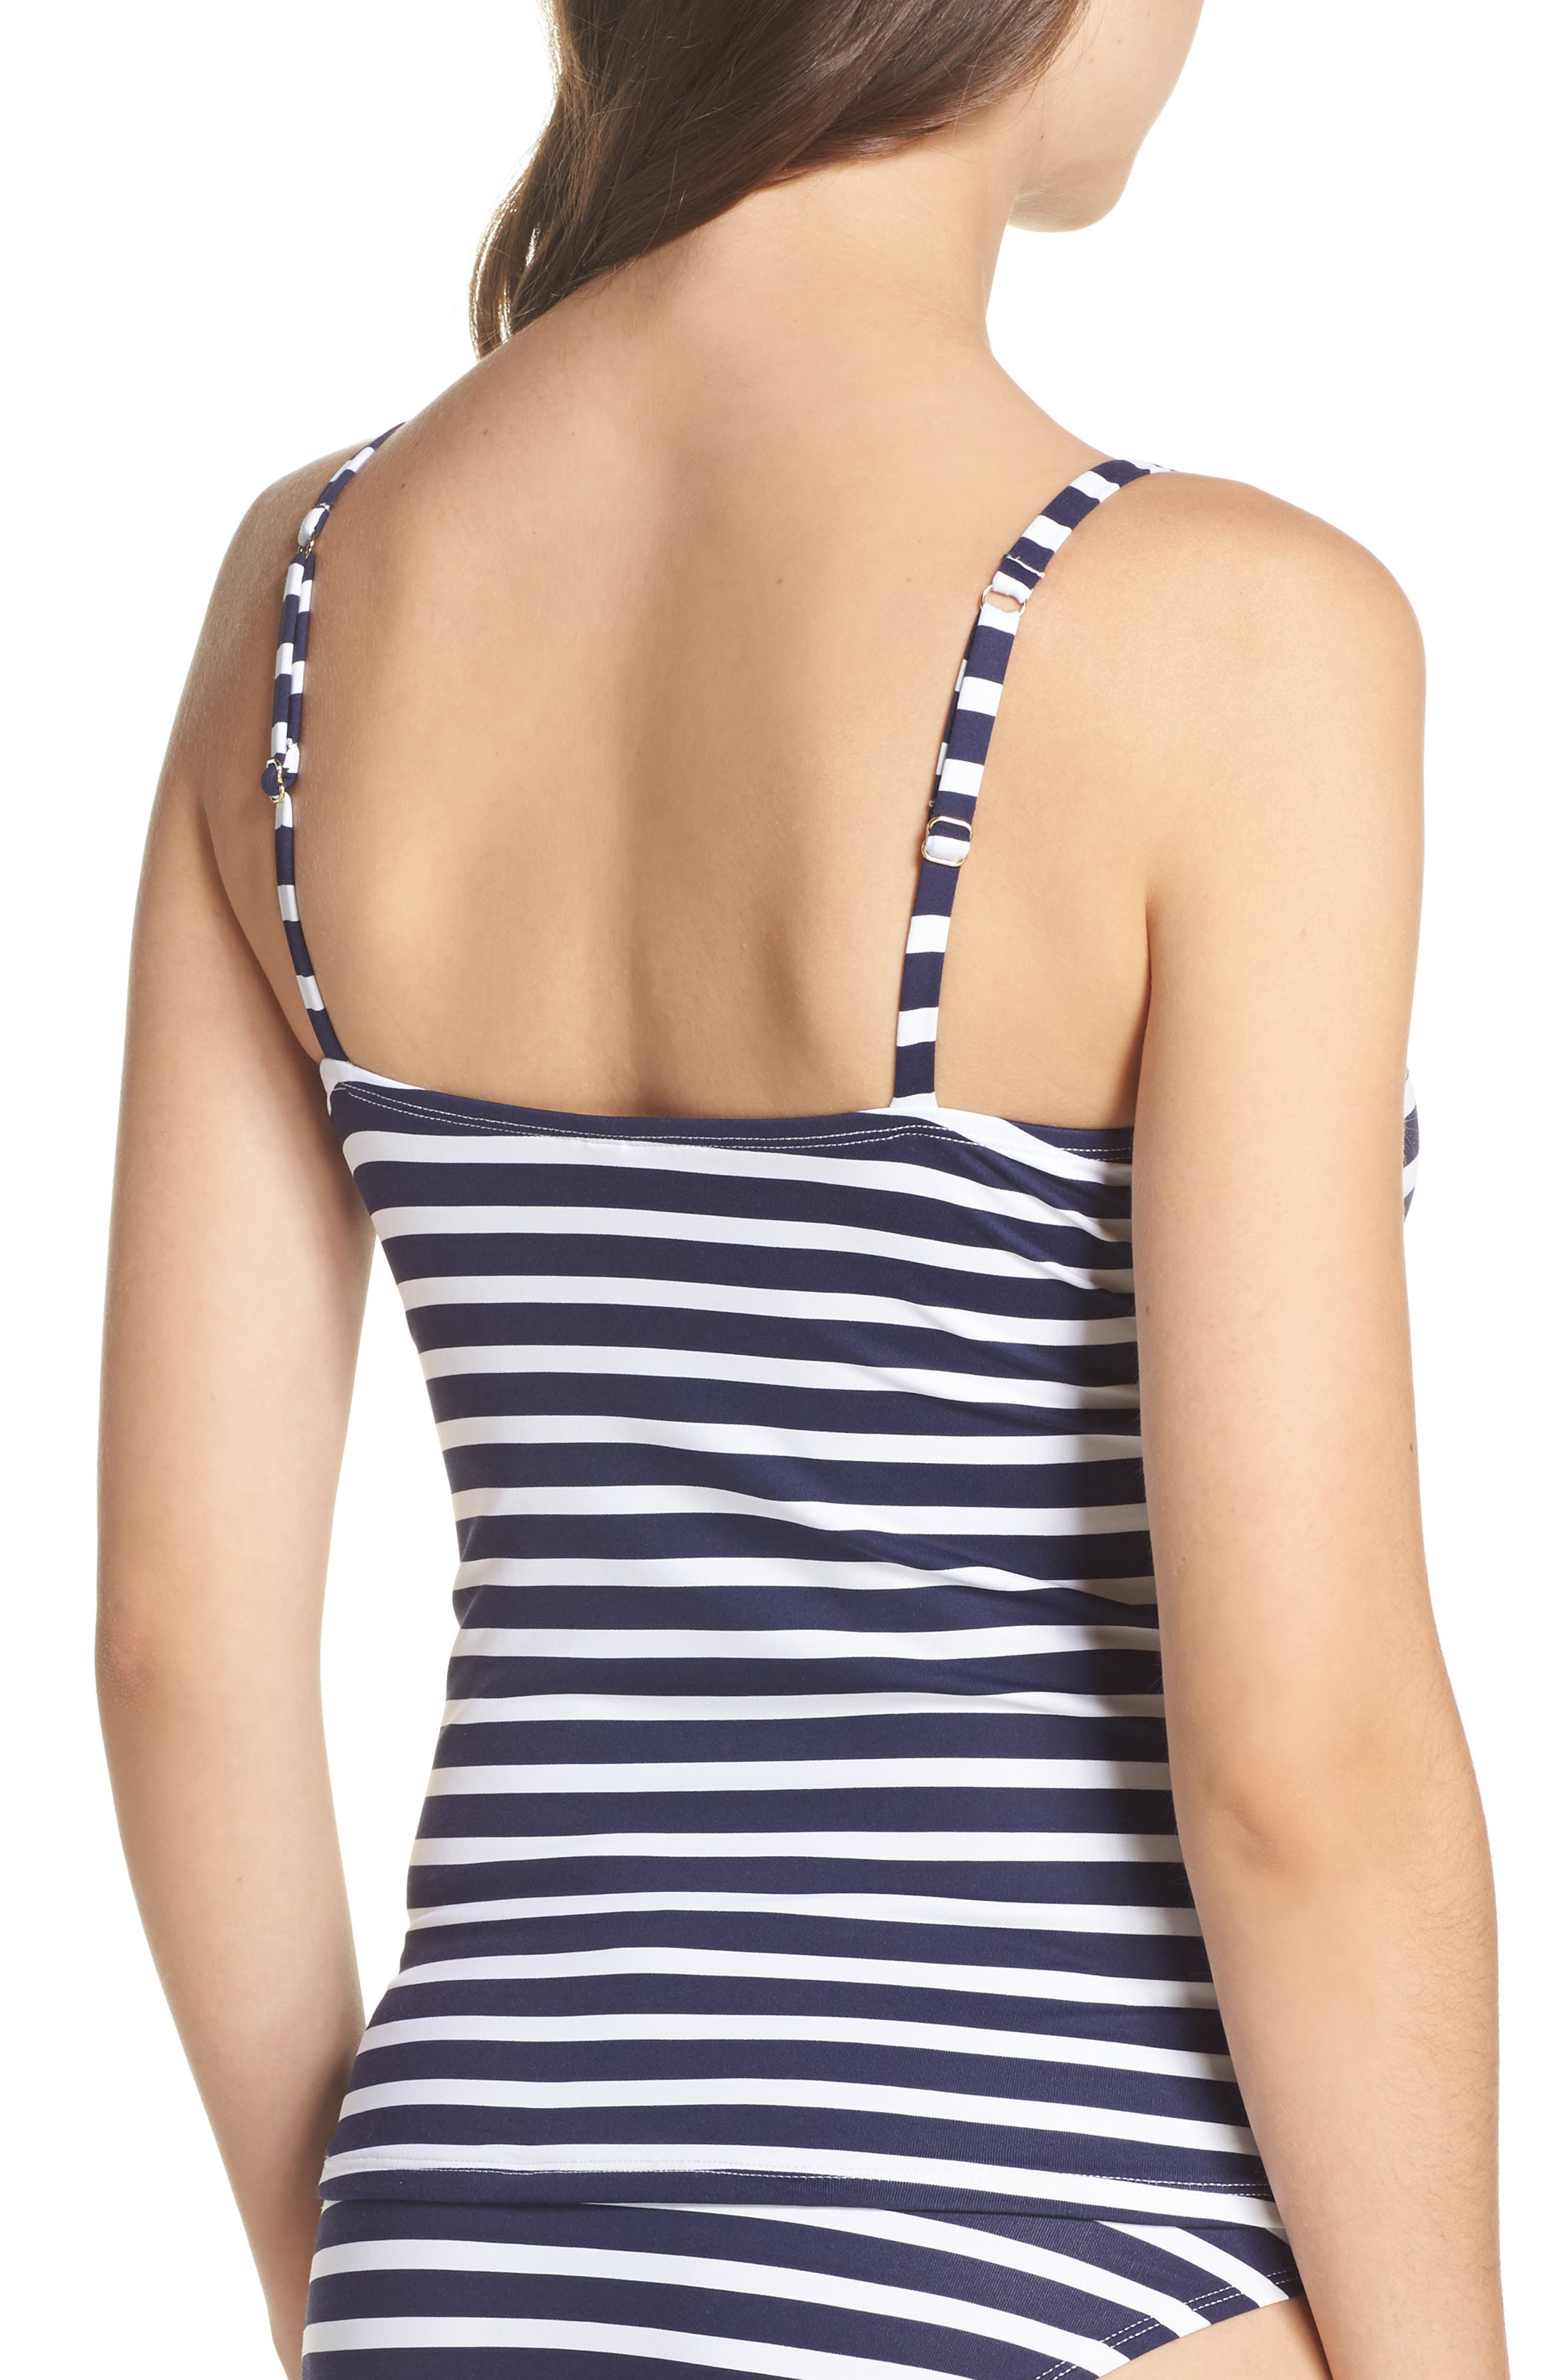 Breton Stripe Tankini Top,                             Alternate thumbnail 2, color,                             Mare Navy/ White